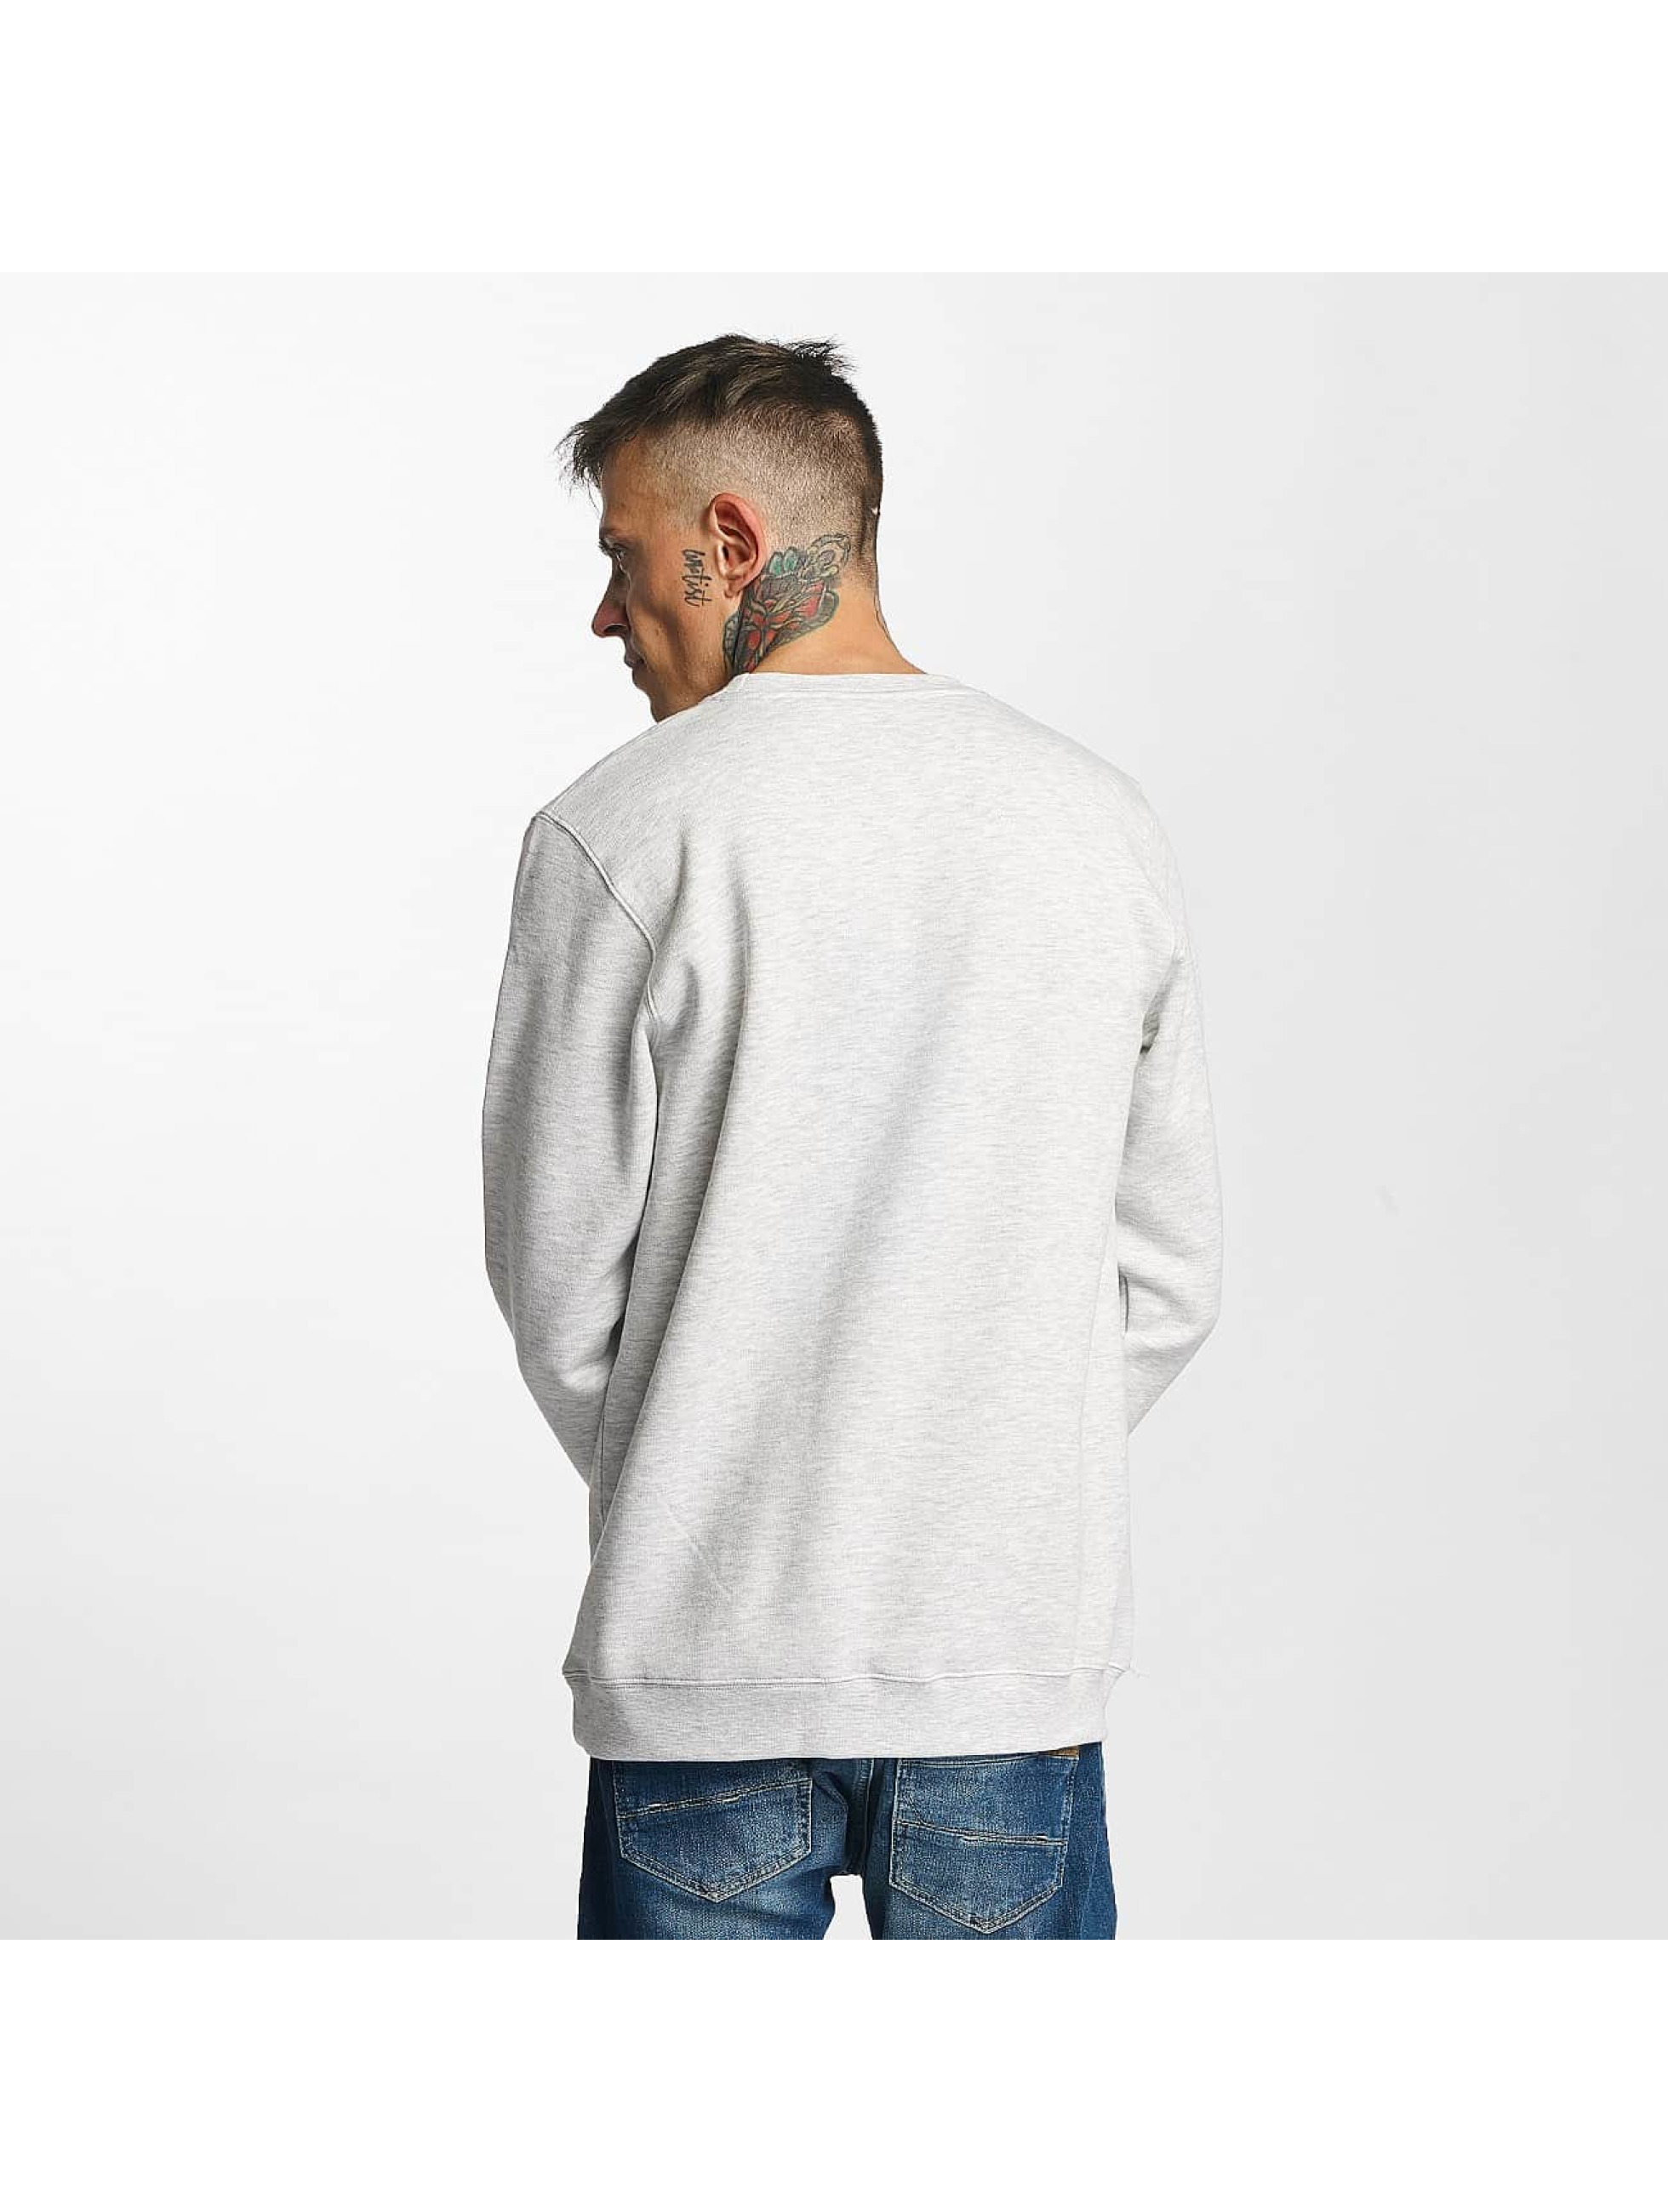 Tealer Pullover Glitch Color grau